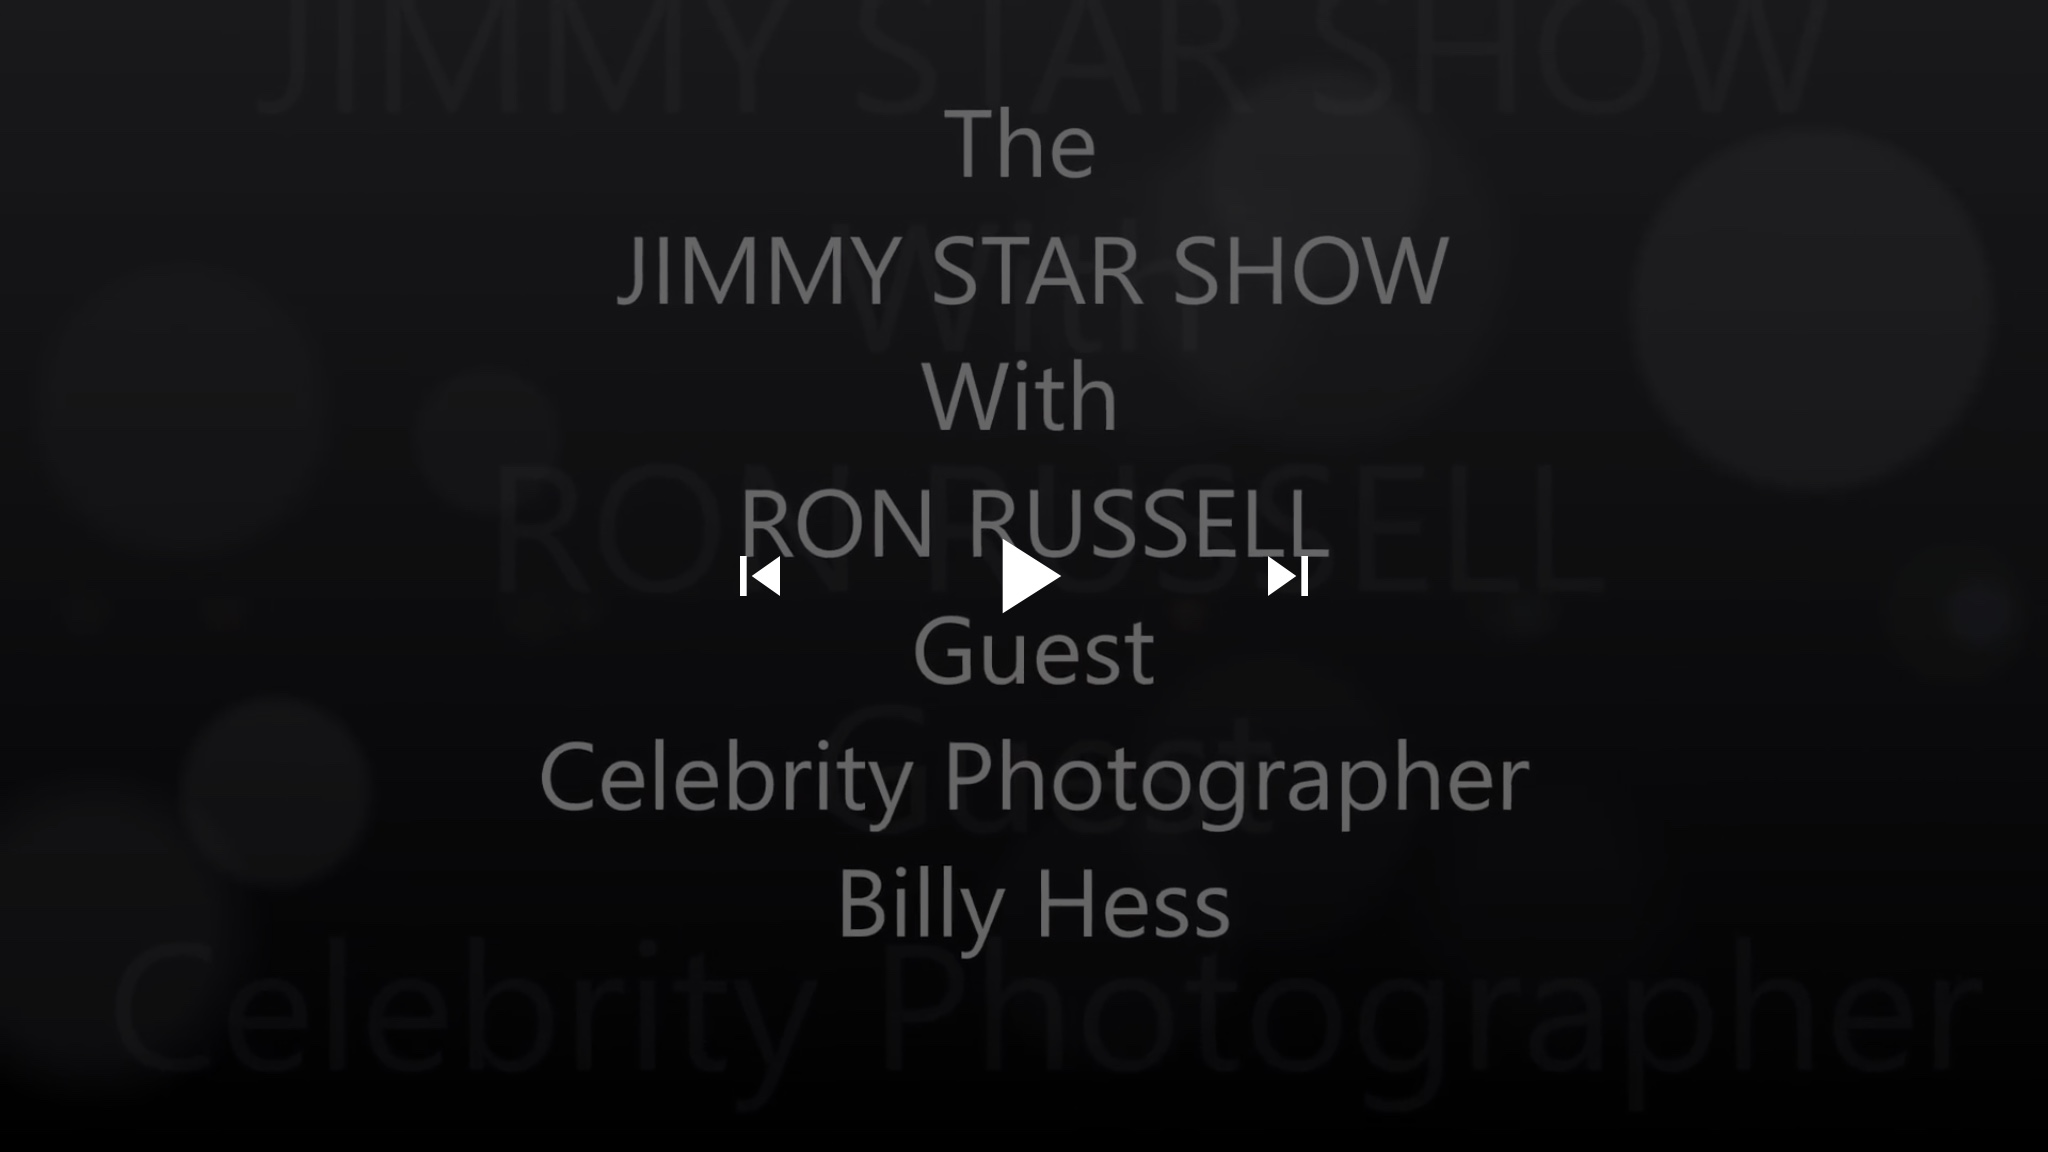 #Episode #Celebrity #Photographer Billy Hess @BillyHessPhotos | The Jimmy Star Show with Ron Russell, Wednesday, October 17, 2018 #jimmystarshow